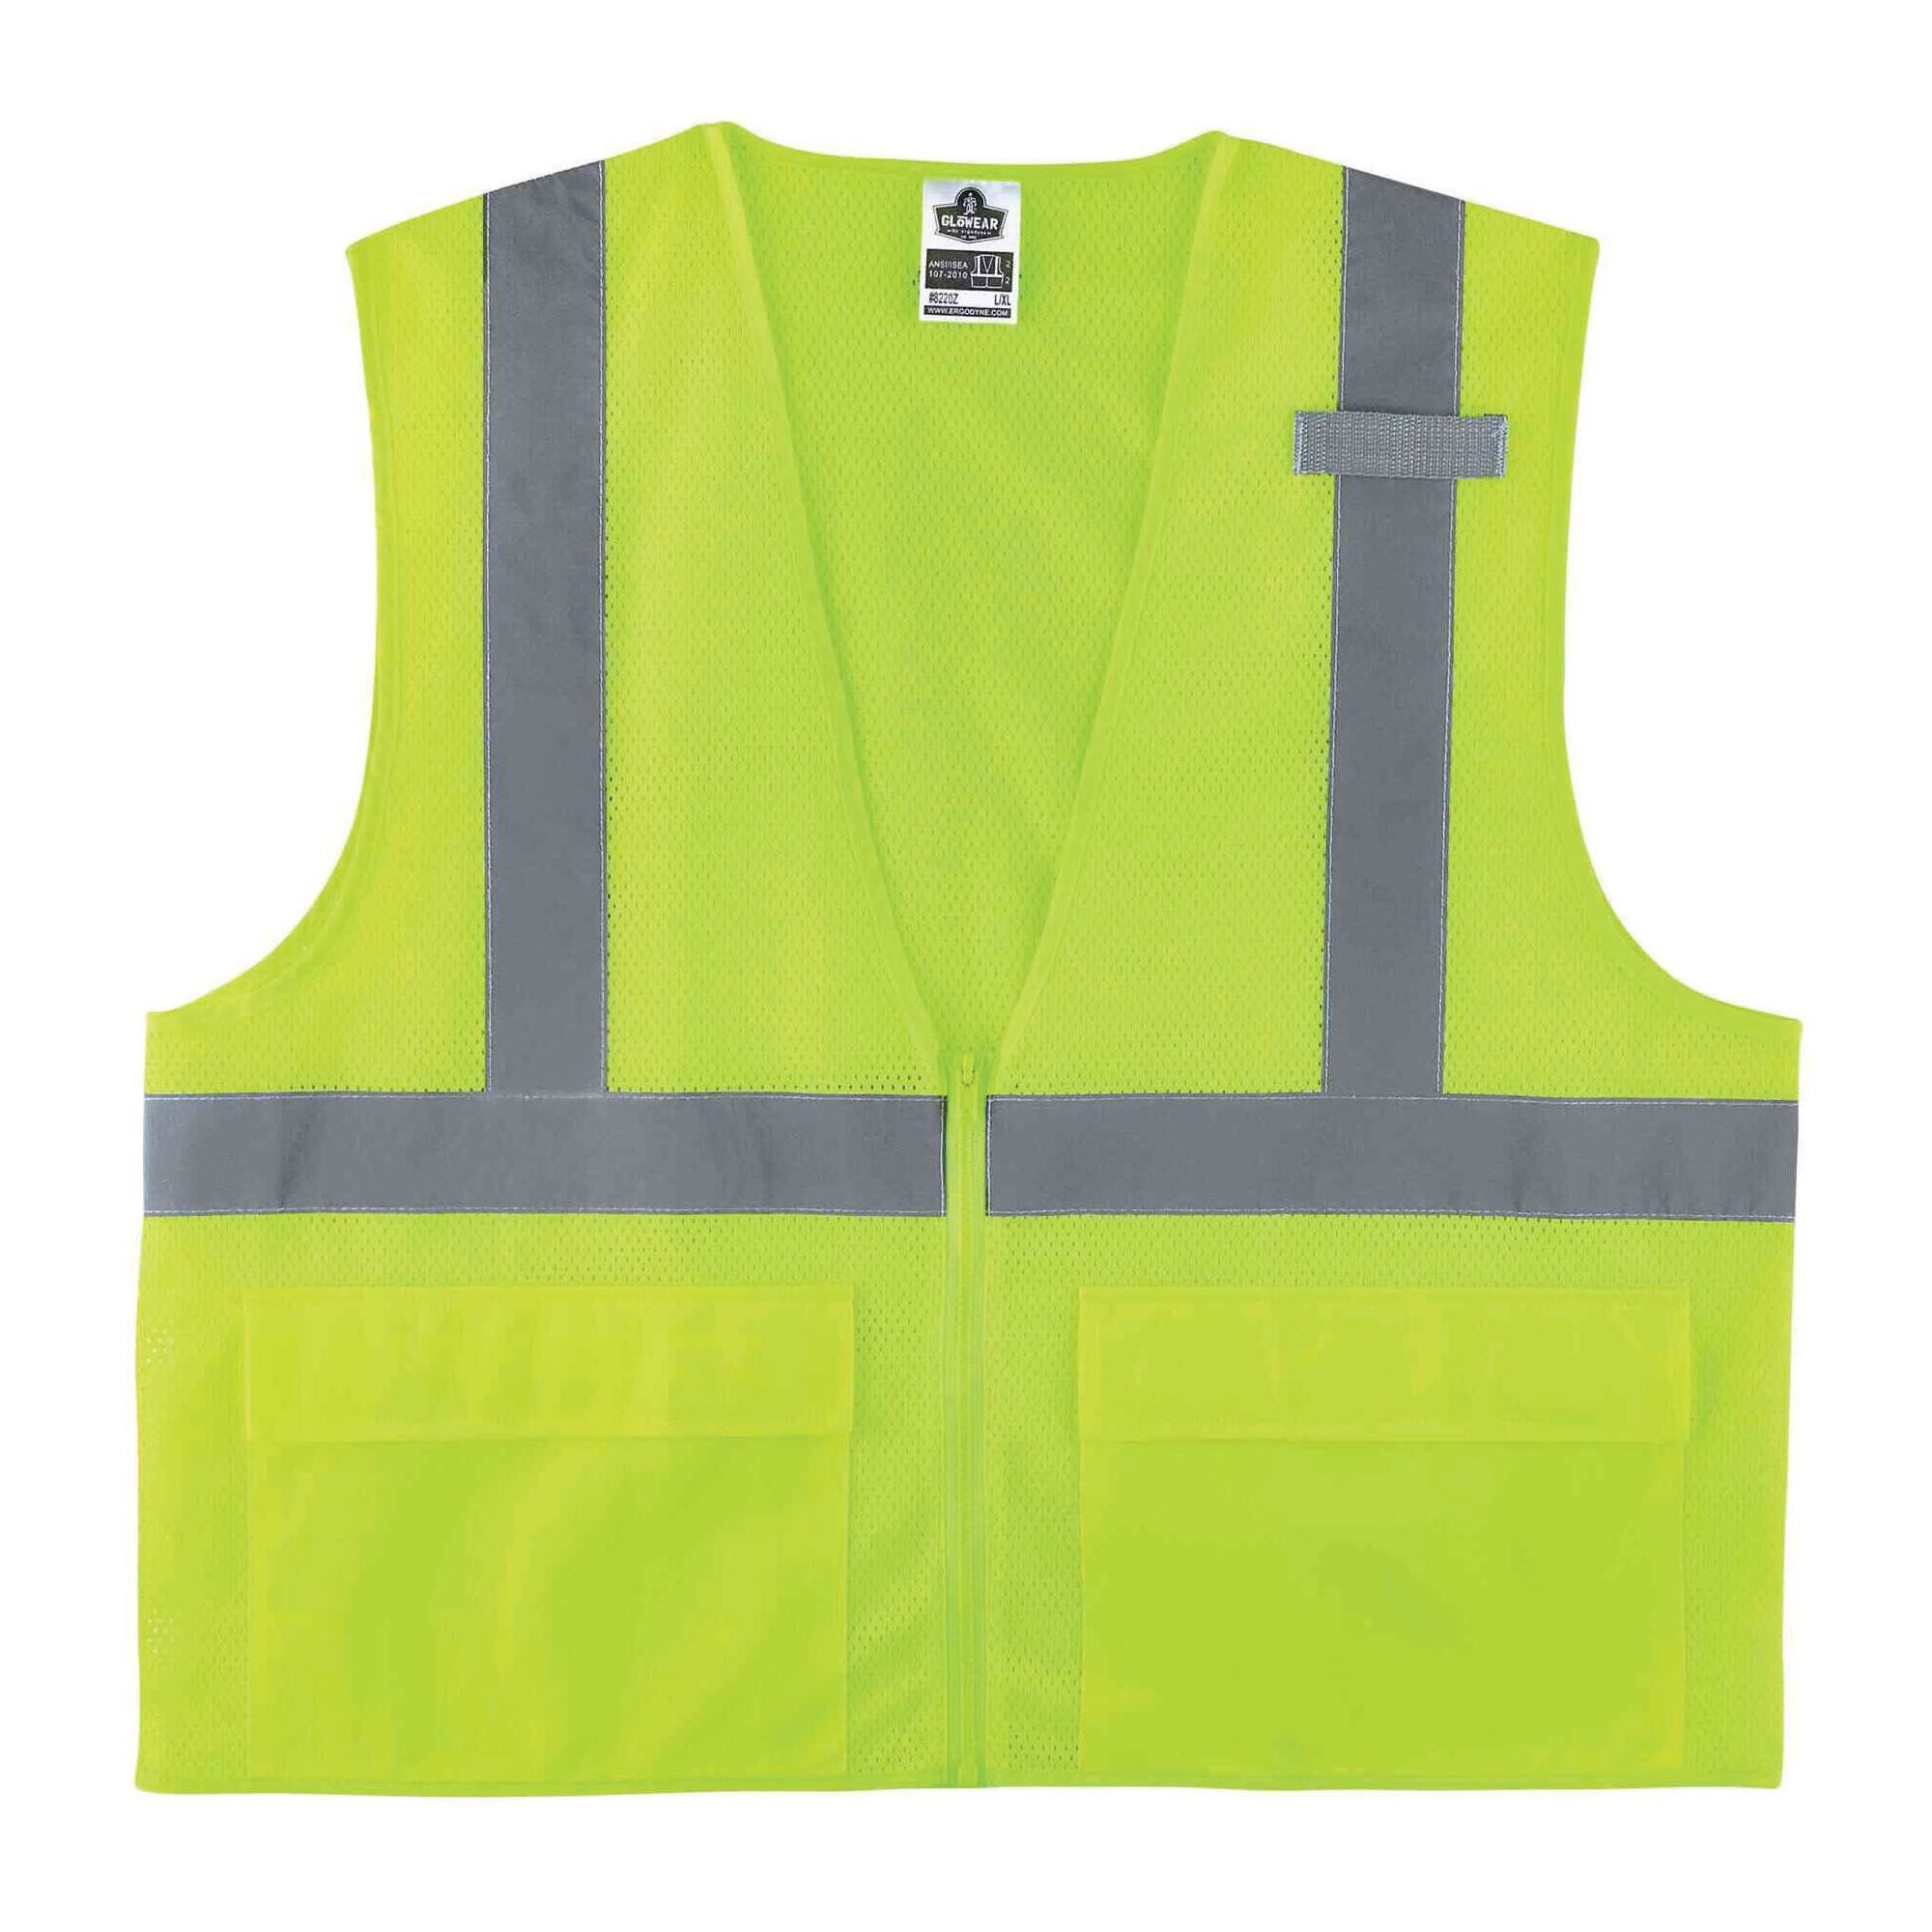 GloWear® 21073 8215BA Econo Style Break-Away Safety Vest, S to M, Hi-Viz Lime, Polyester Mesh, Hook and Loop Closure, 1 Pockets, ANSI Class: Class 2, ANSI/ISEA 107-2015 Type R